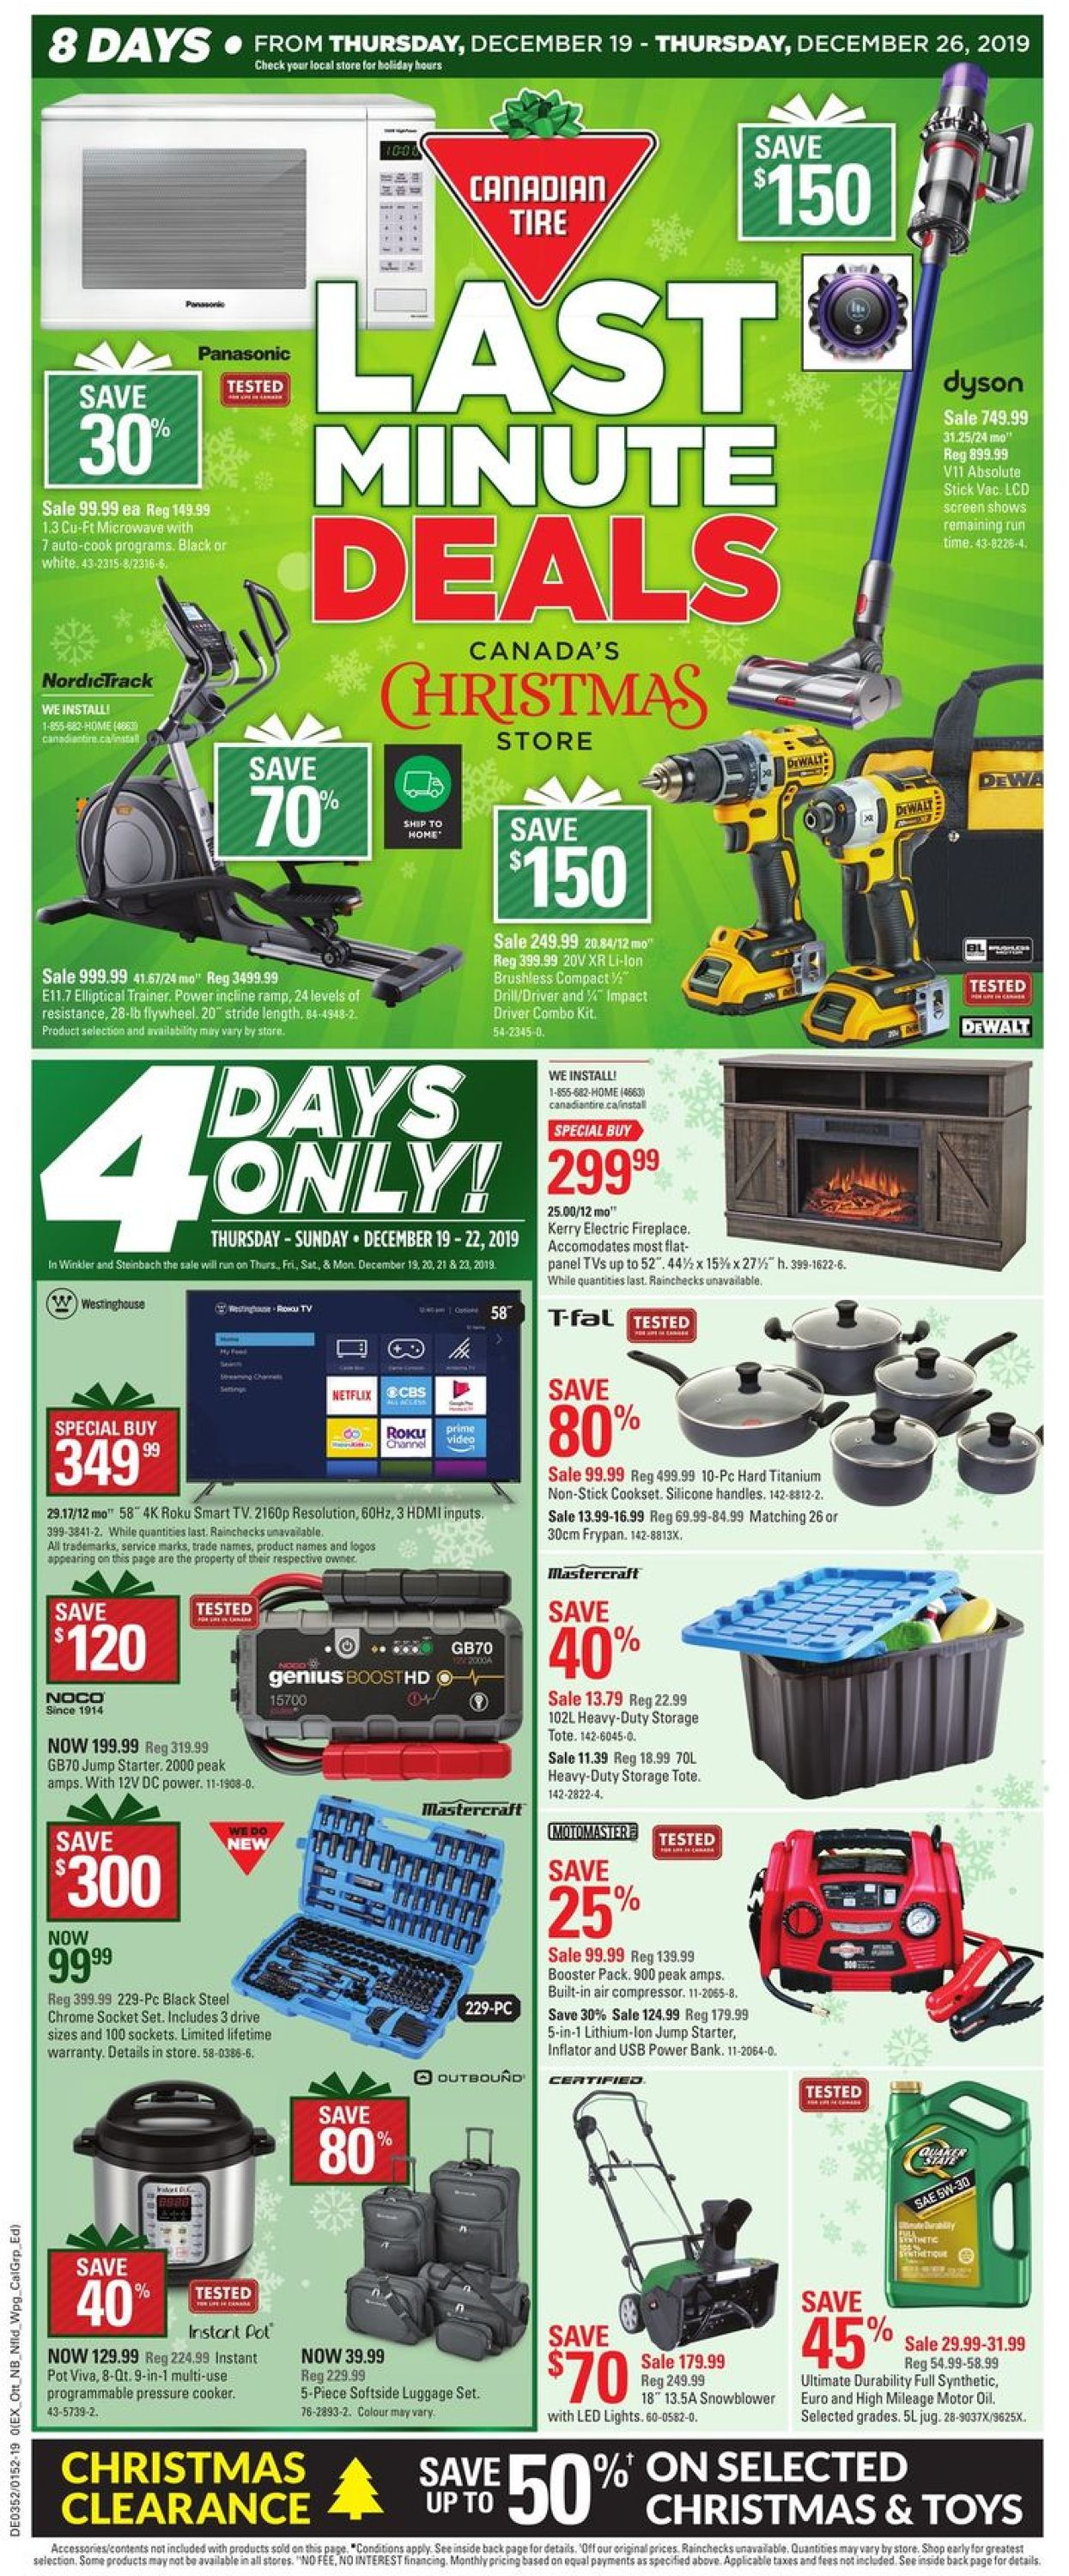 Canadian Tire Christmas Flyer 2019 Flyer - 12/19-12/26/2019